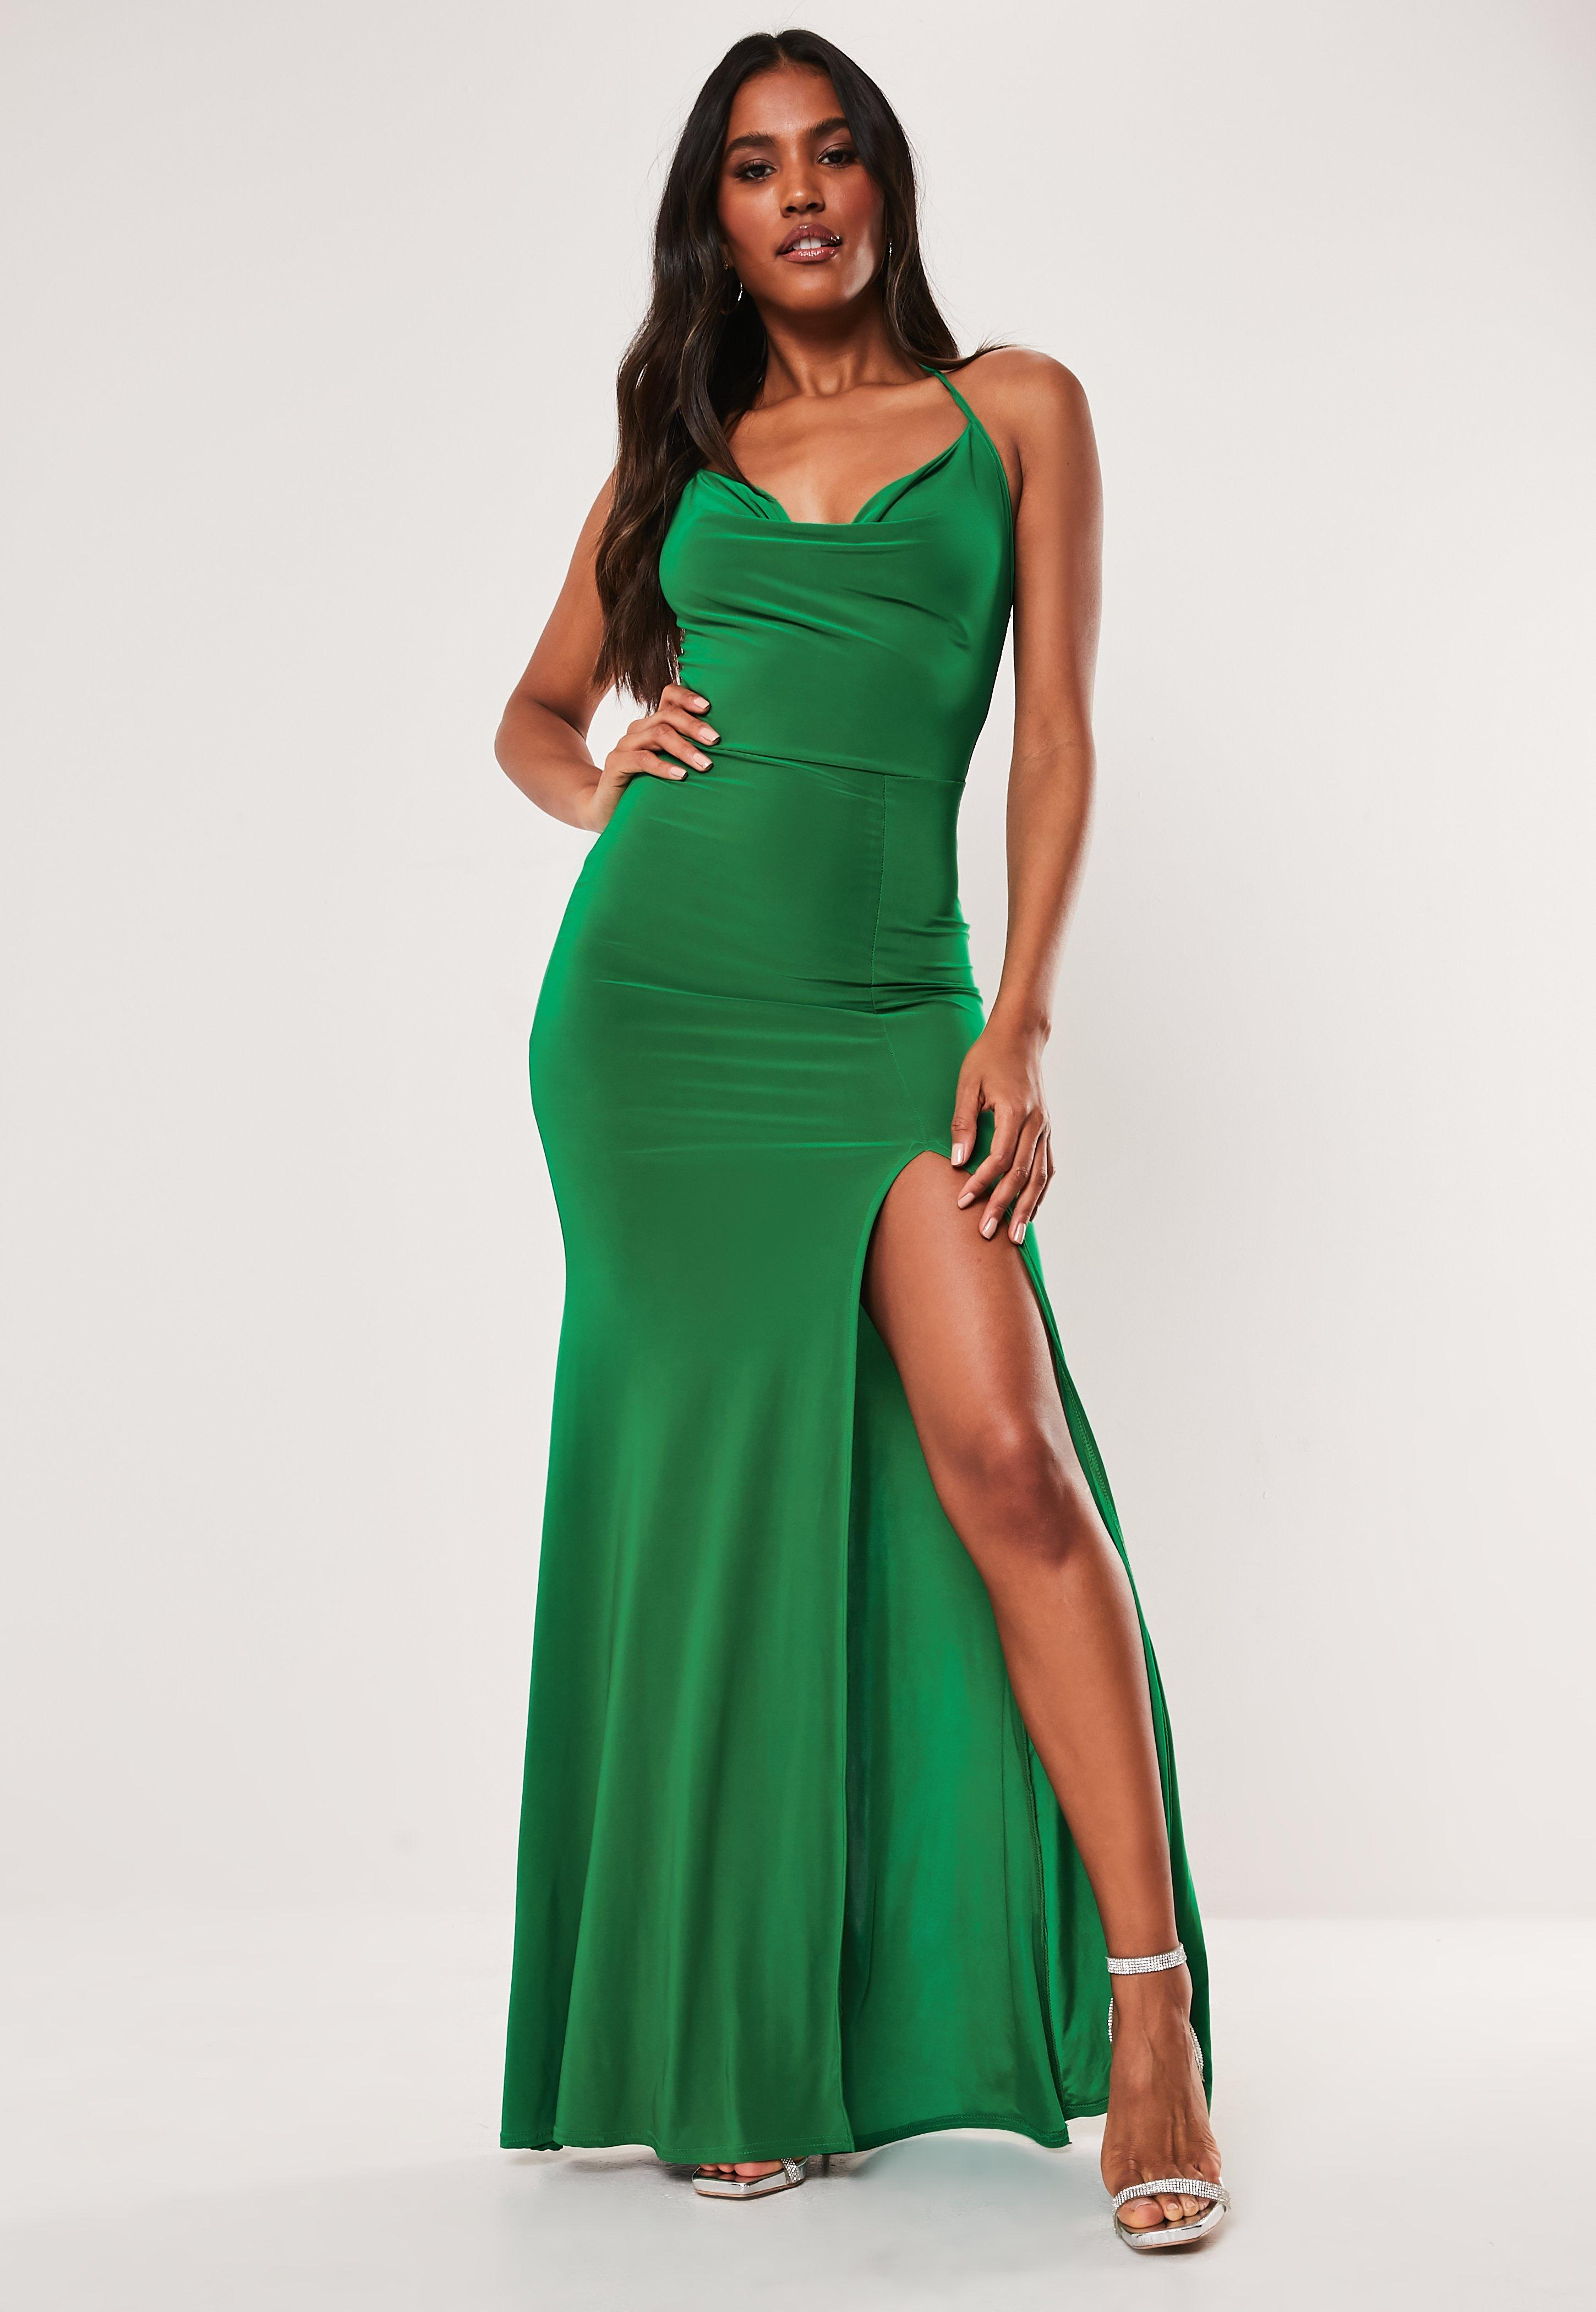 9f9109972d34 Formal Dresses | Prom Dresses Online - Missguided Australia